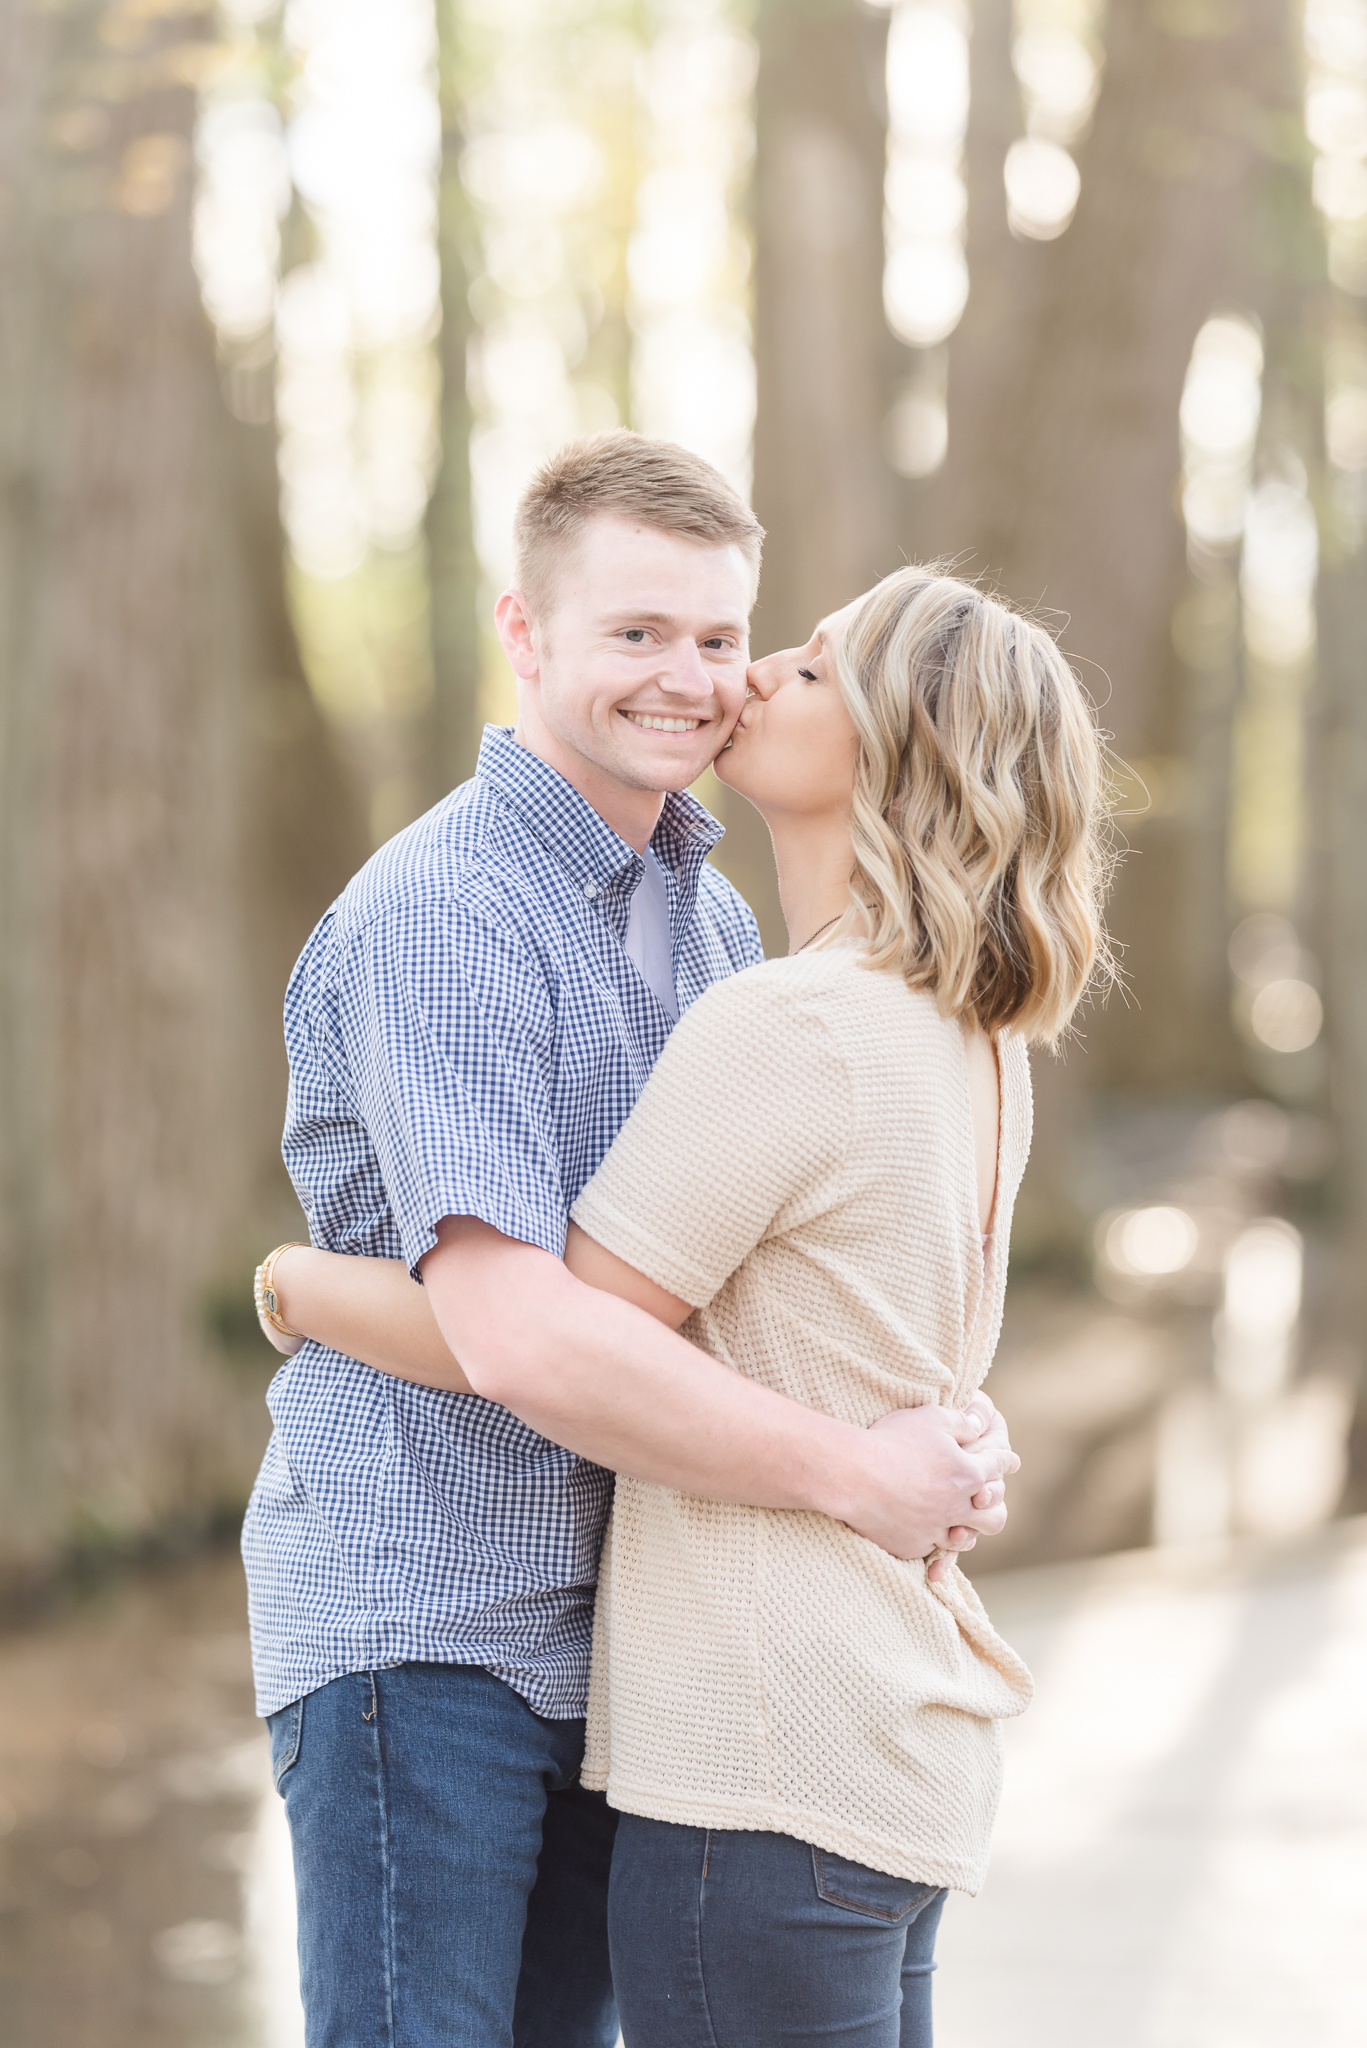 Richie Woods Nature Preserve and Mustard Seed Gardens Engagement Session Wedding Photos-15.jpg